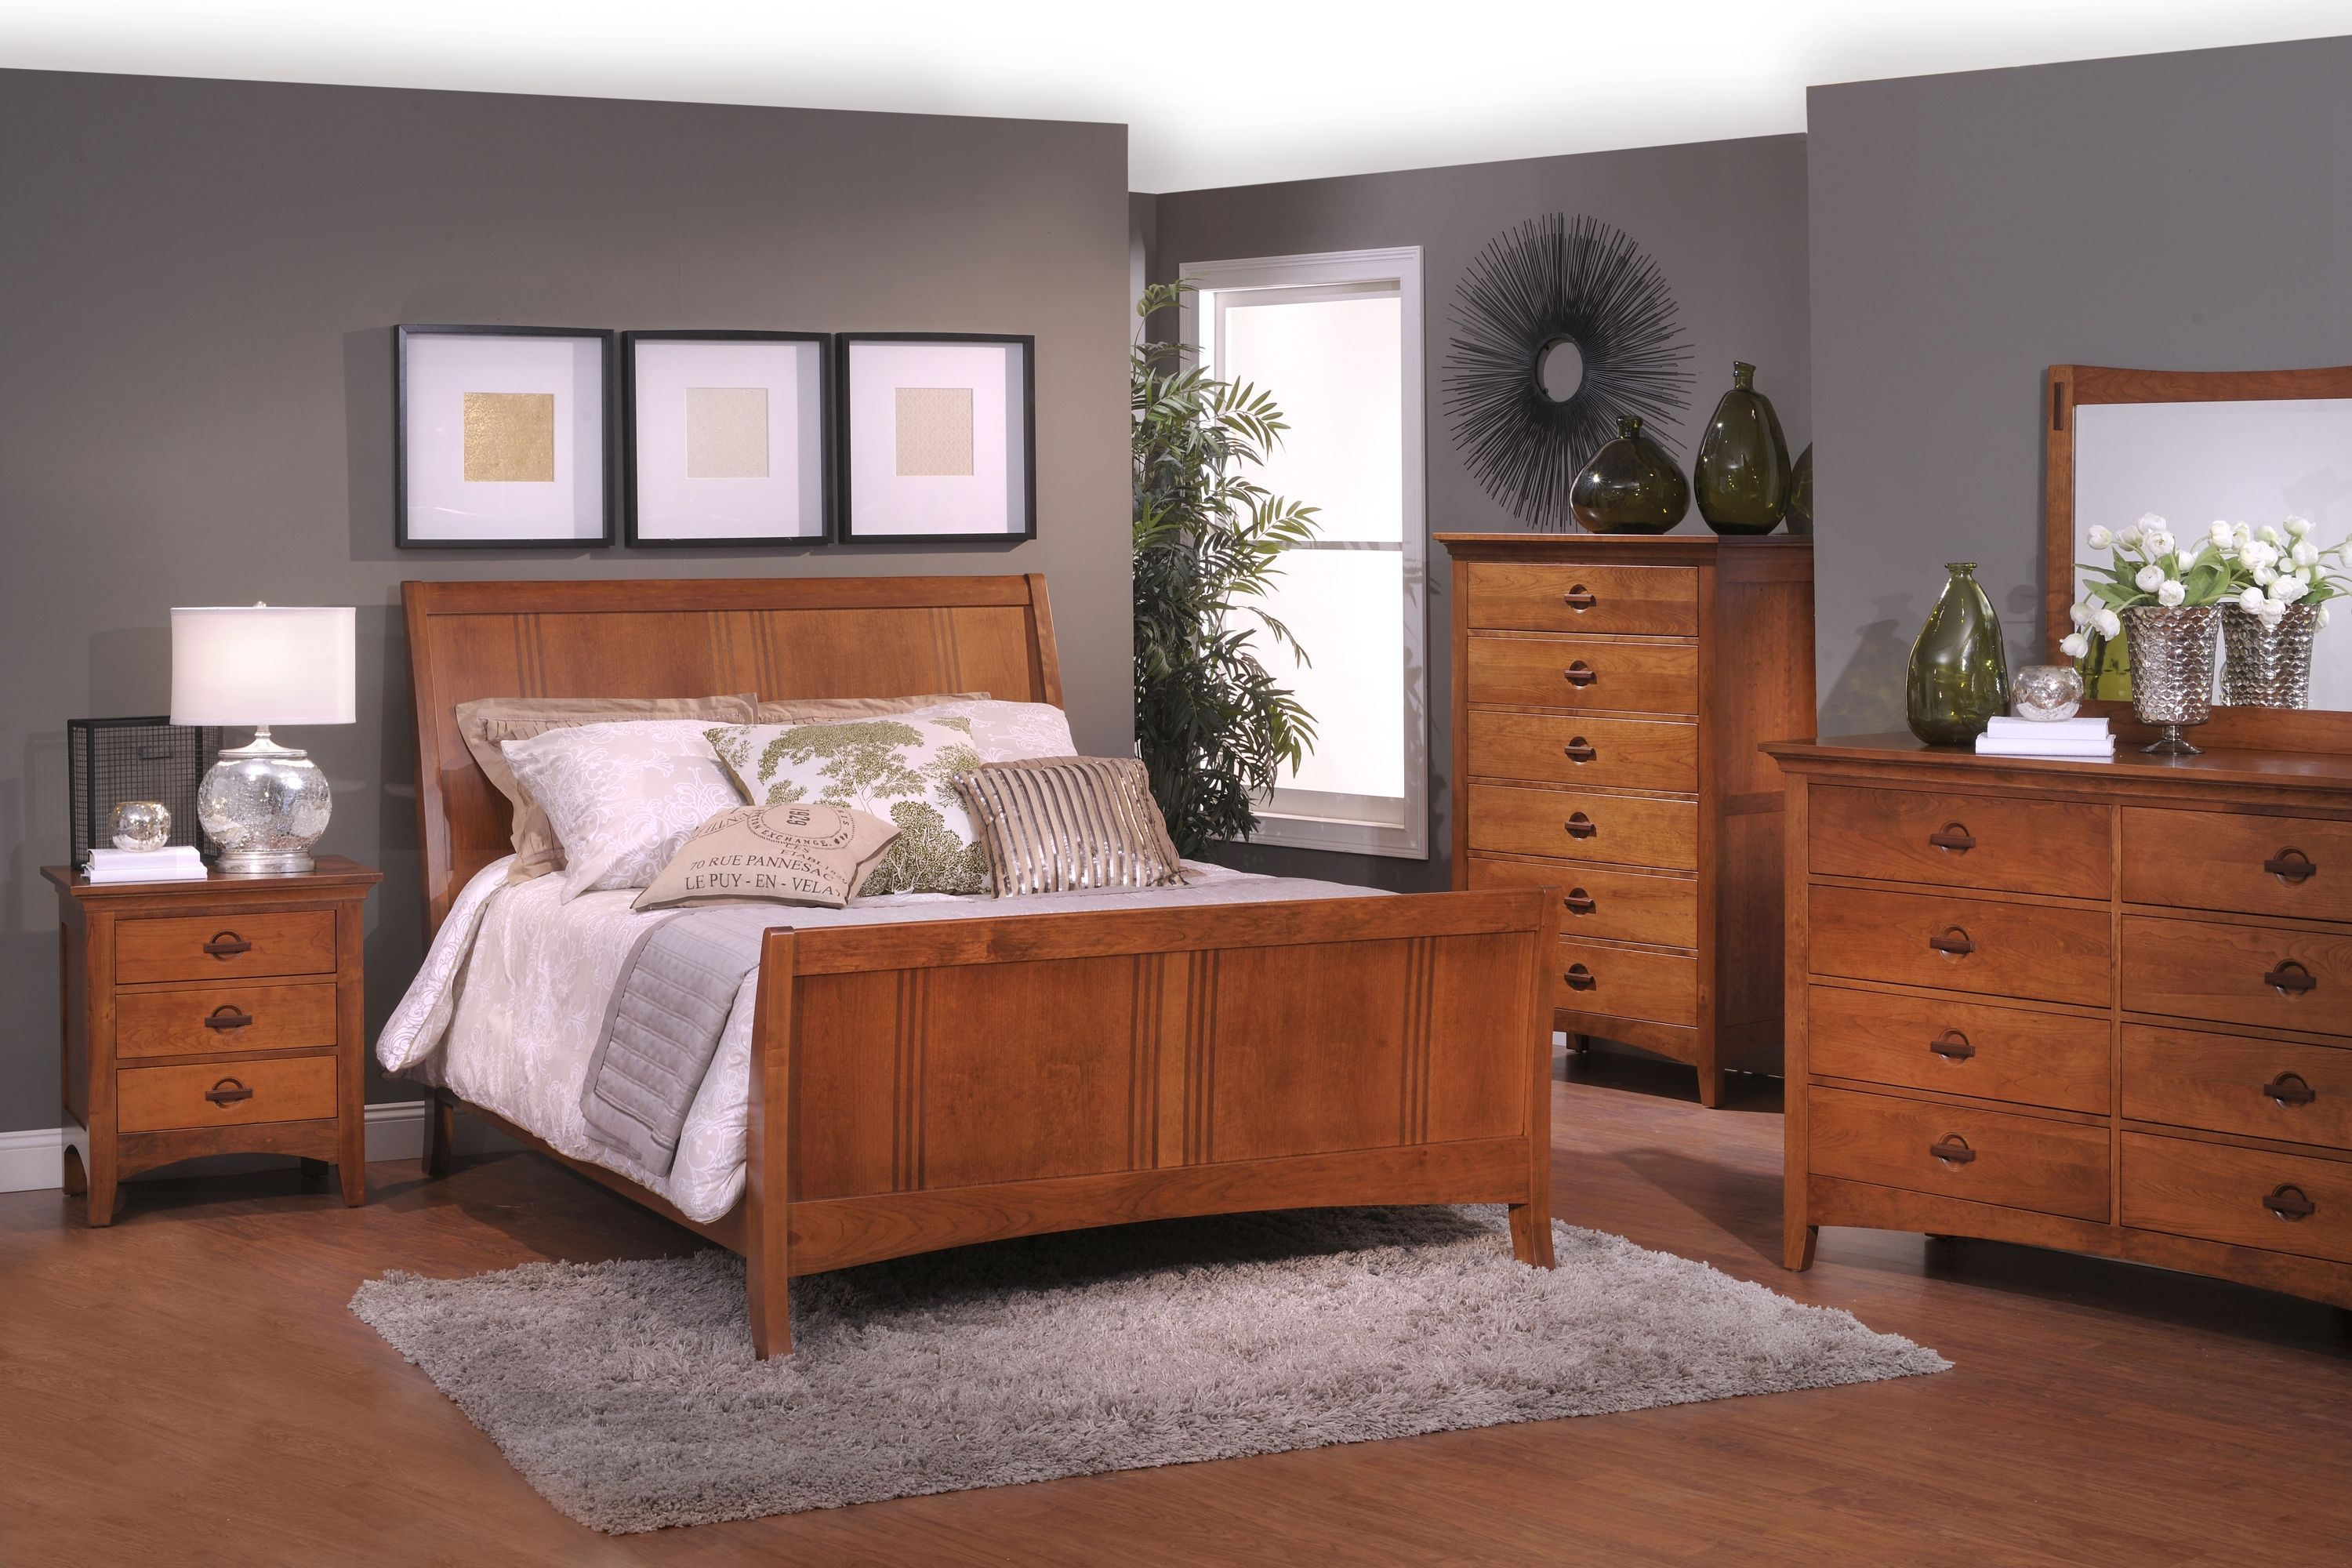 White Shaker Style Bedroom Furniture